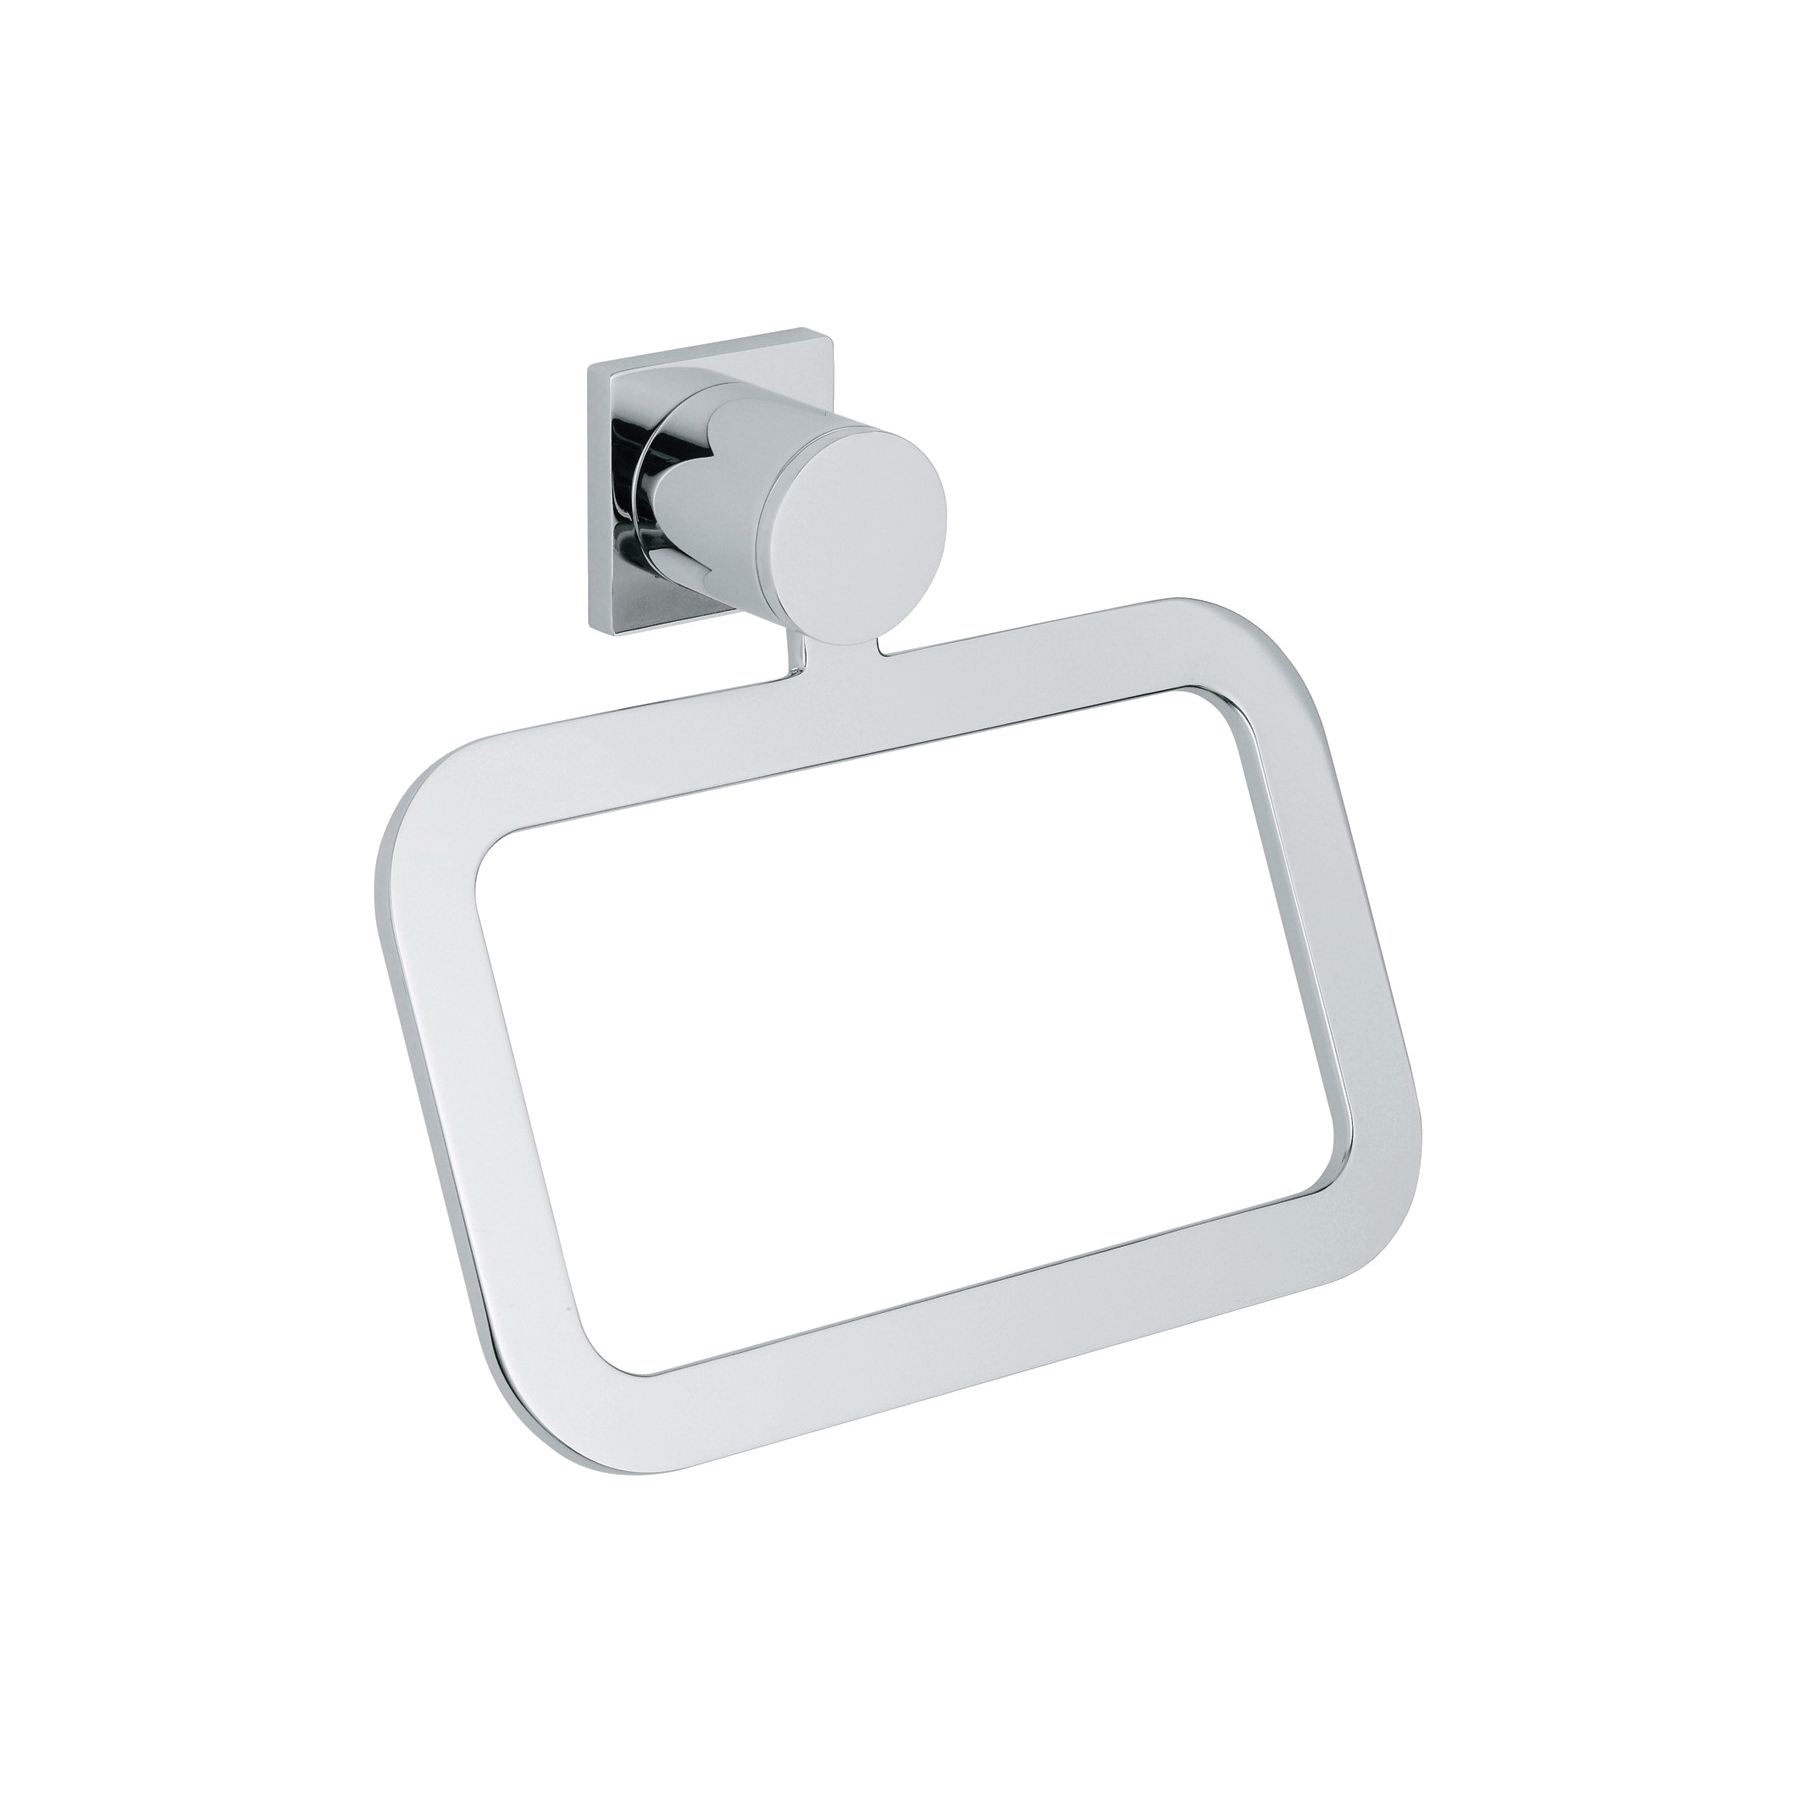 GROHE 40339000 Allure Towel Ring, 93 mm OAD x 156 mm OAH, Metal, Import